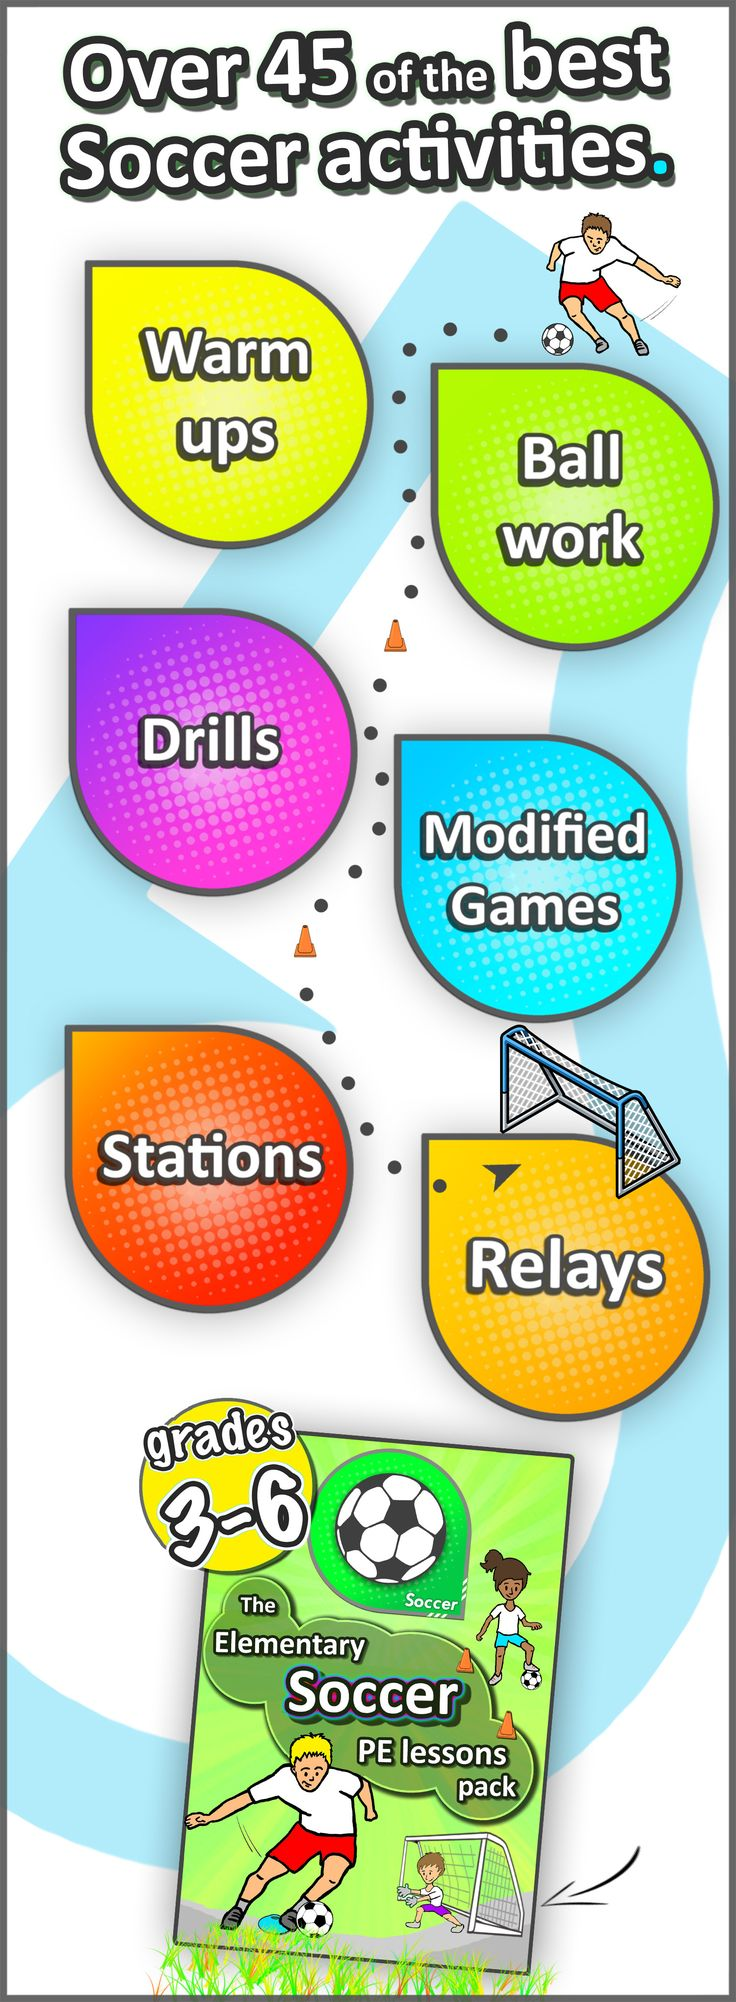 Soccer ideas, games, skills and drills - lesson plans for your grades 3-6